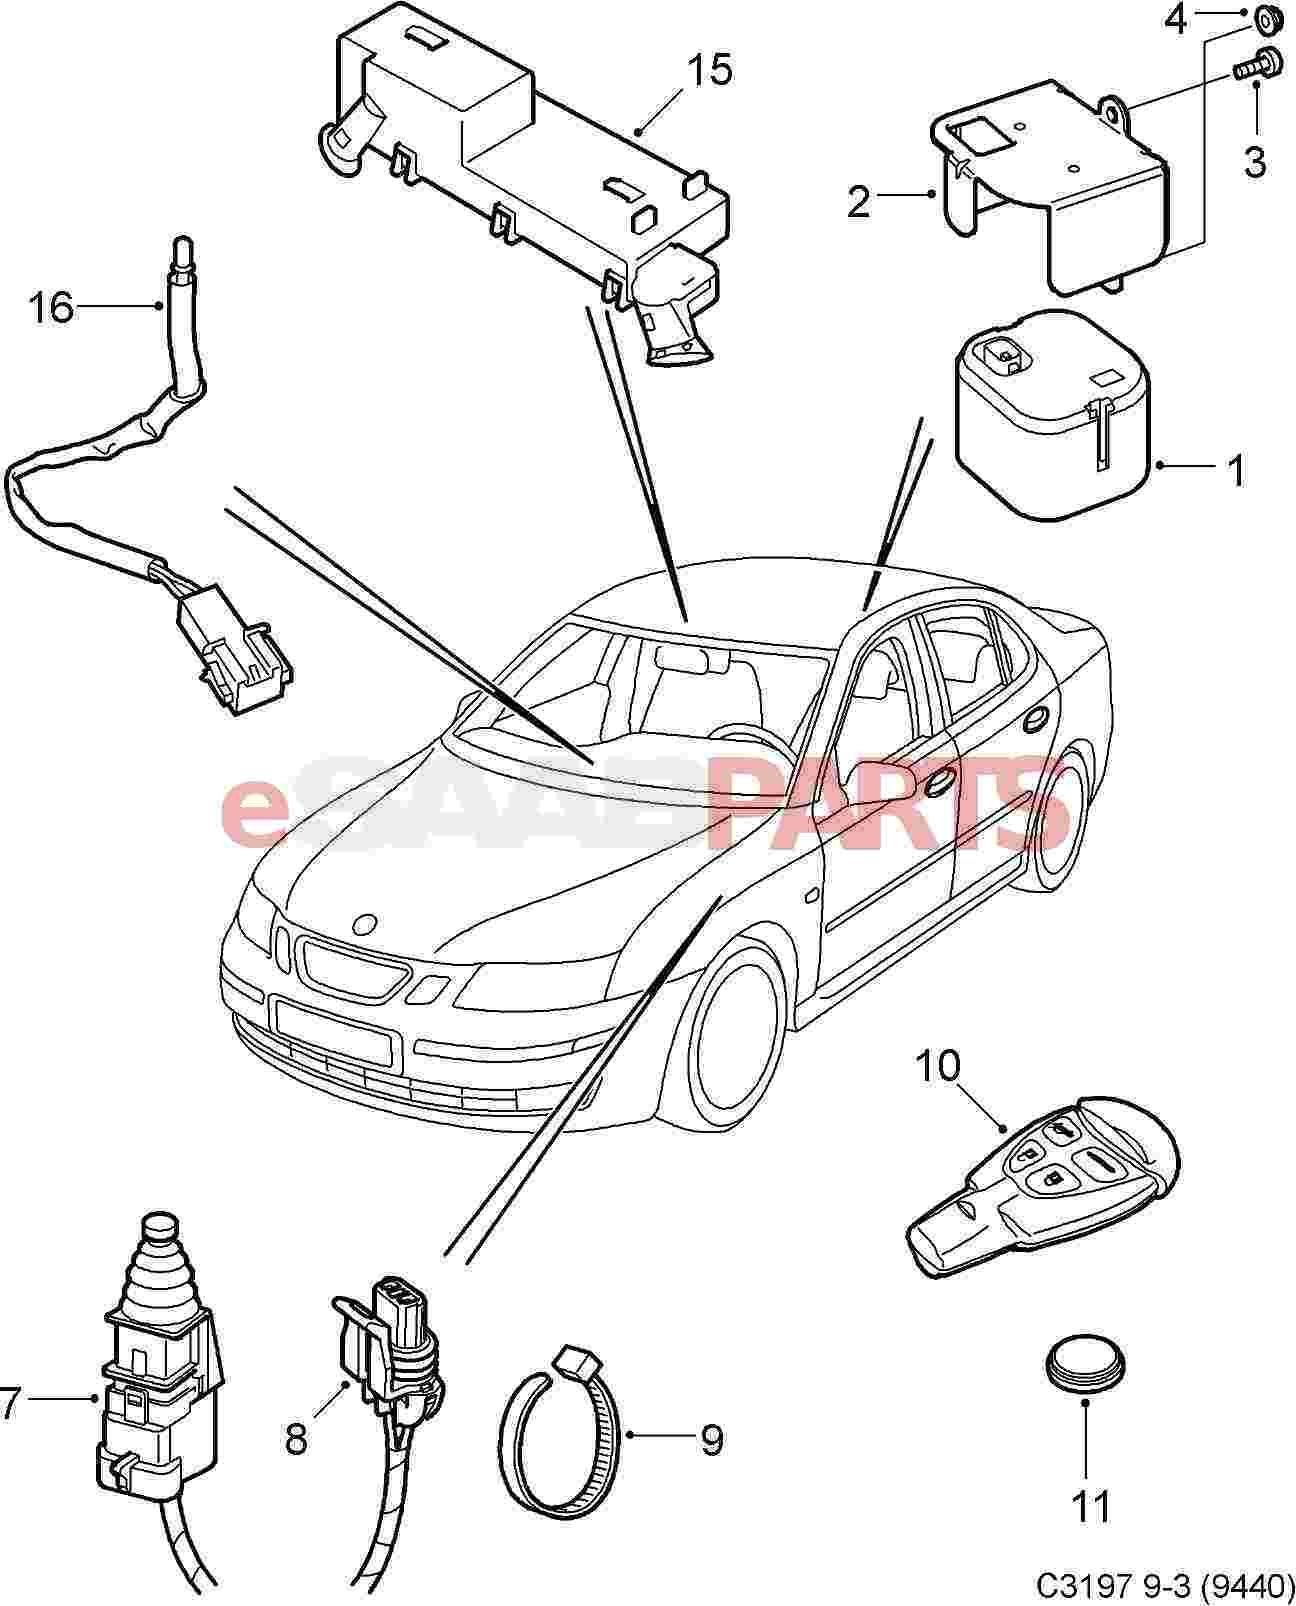 2006 saab 9 3 headlight diagram html